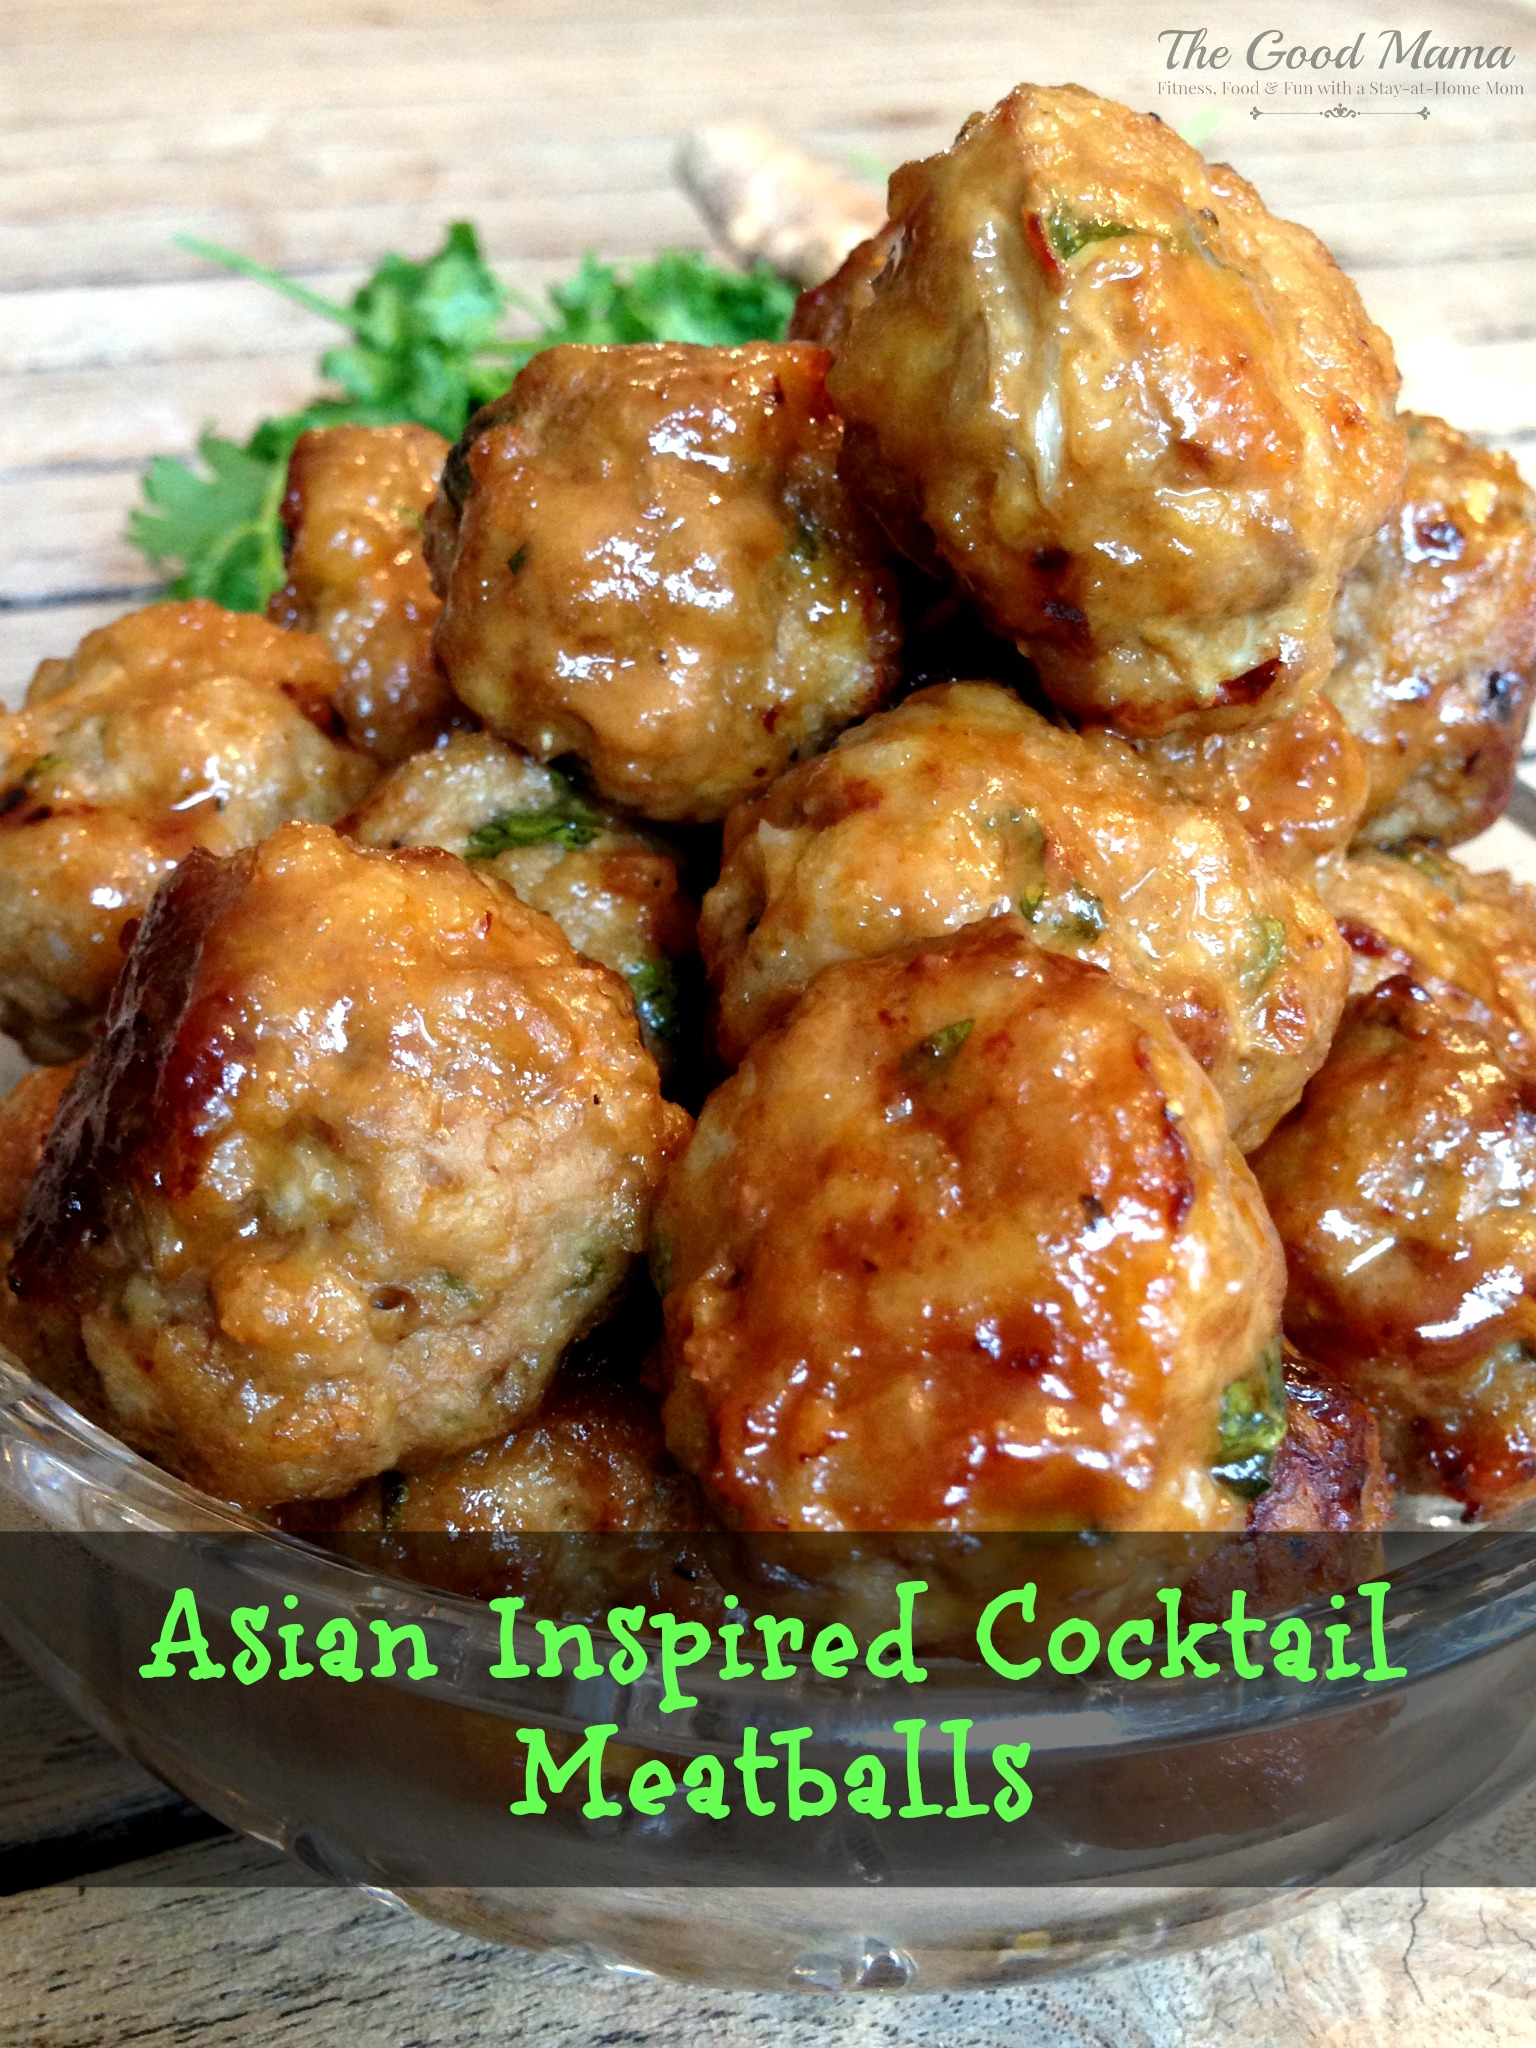 Asian Inspired Cocktail Meatballs